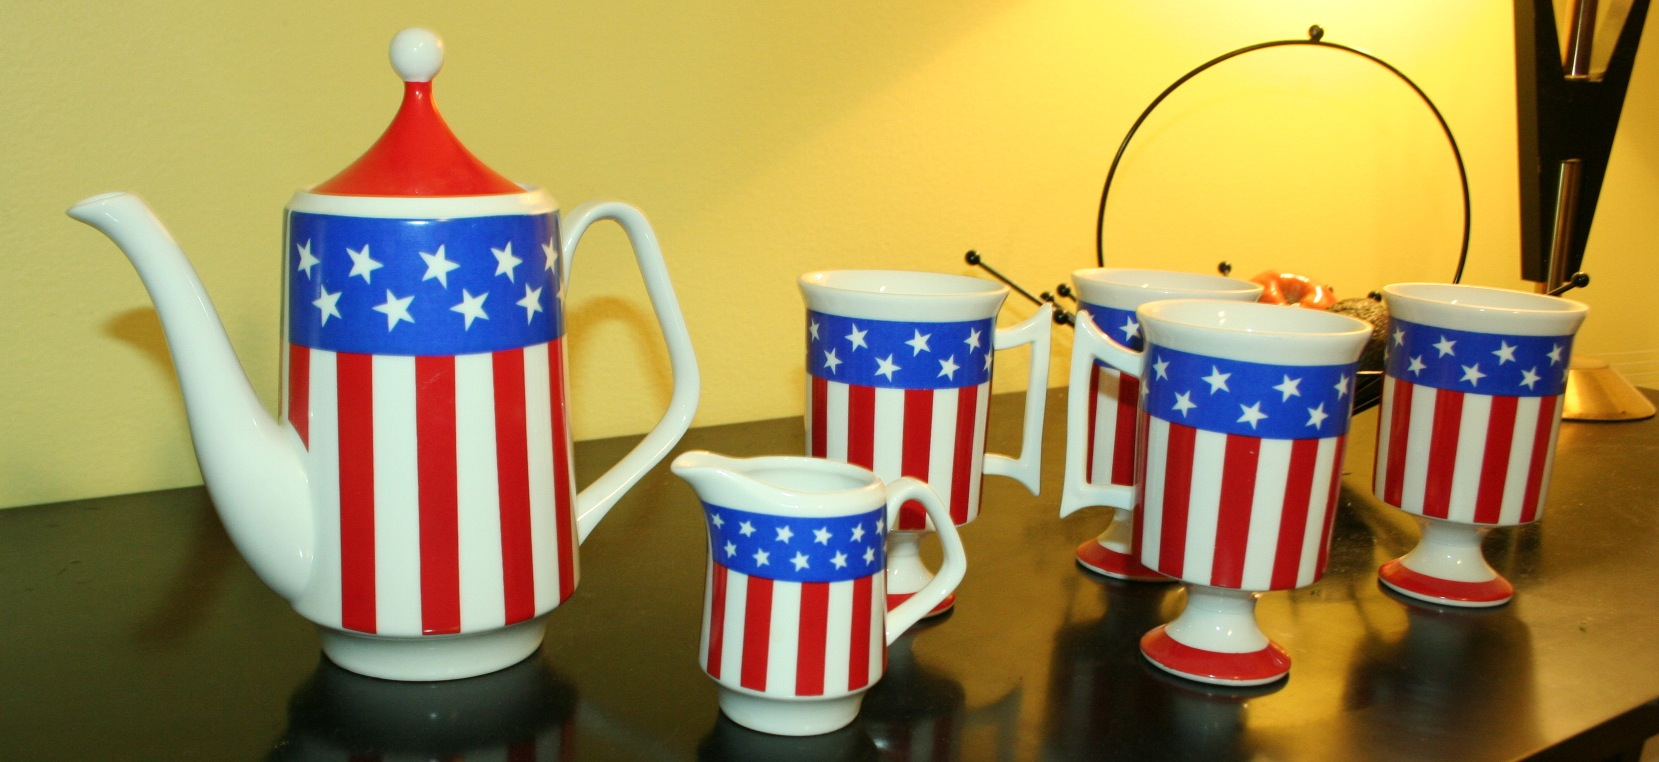 Stars & stripes coffee set.JPG